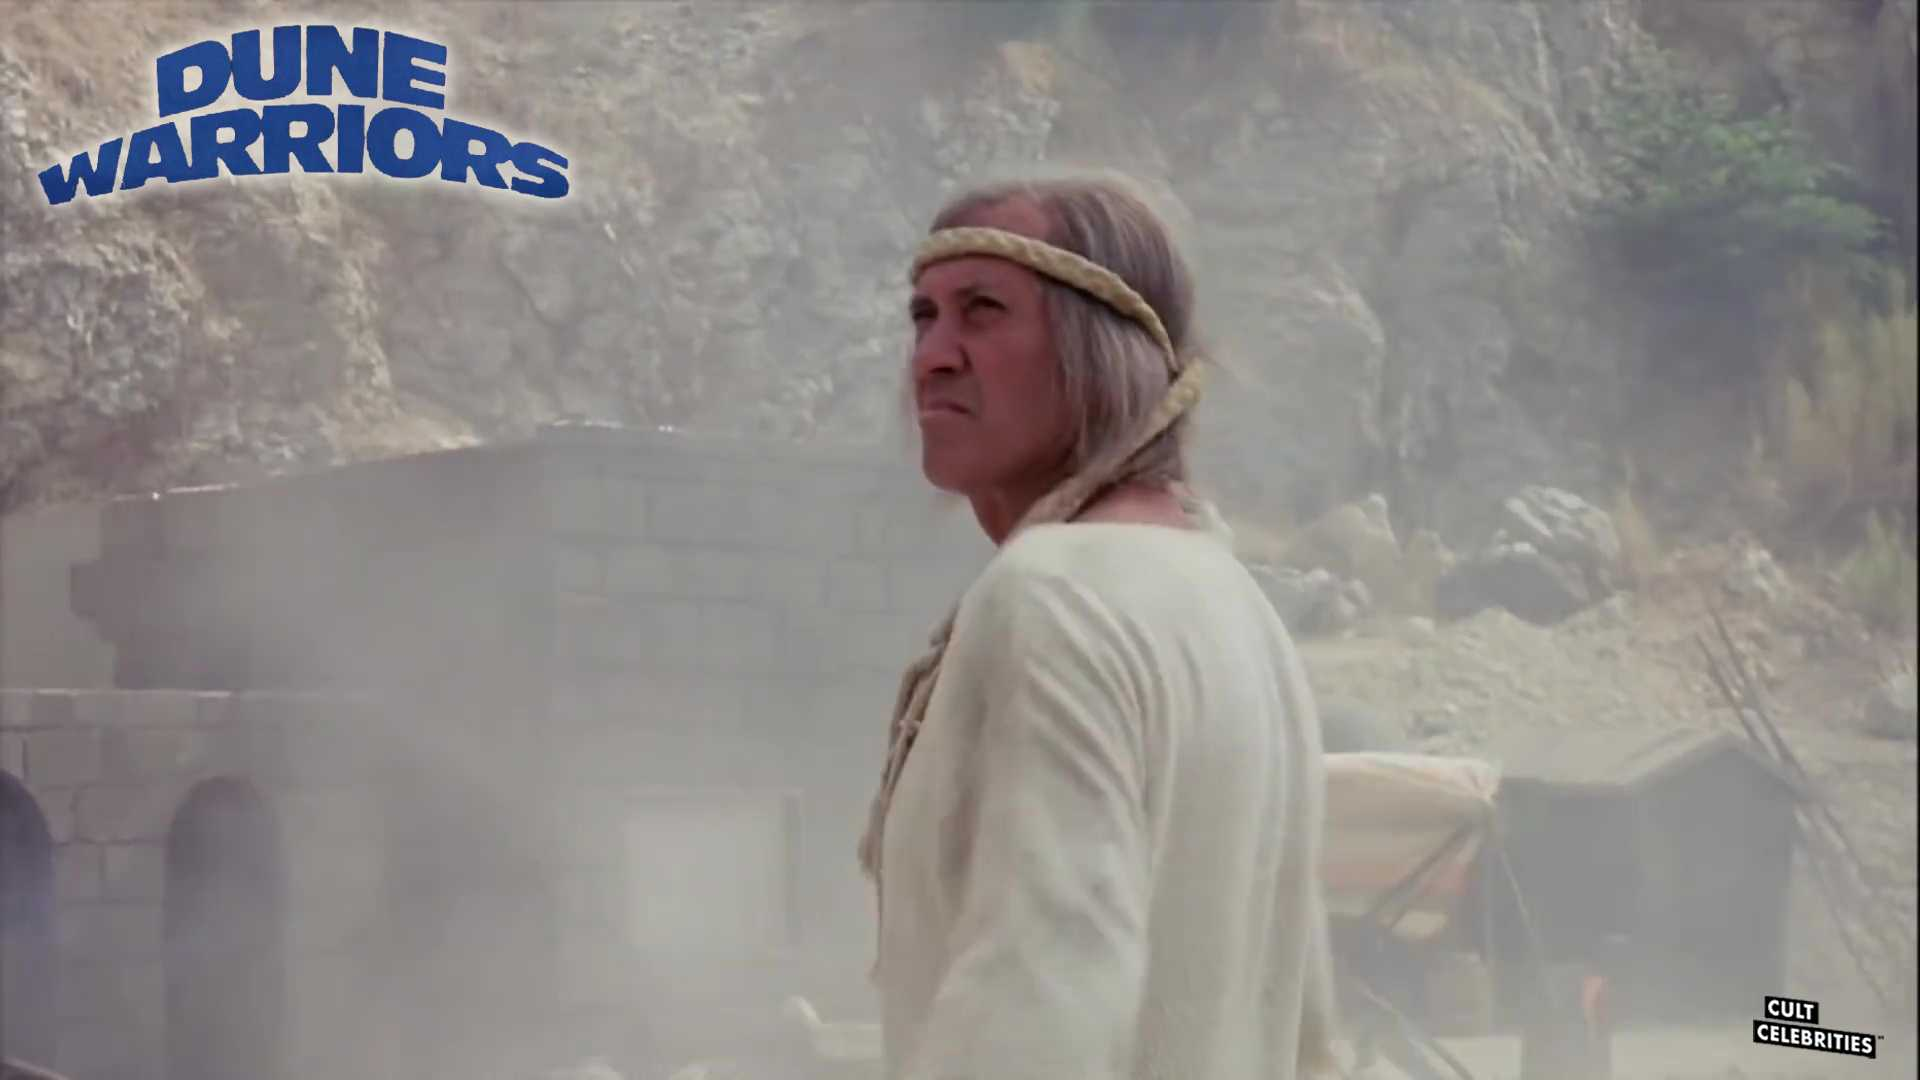 David Carradine in Dune Warriors (1990)